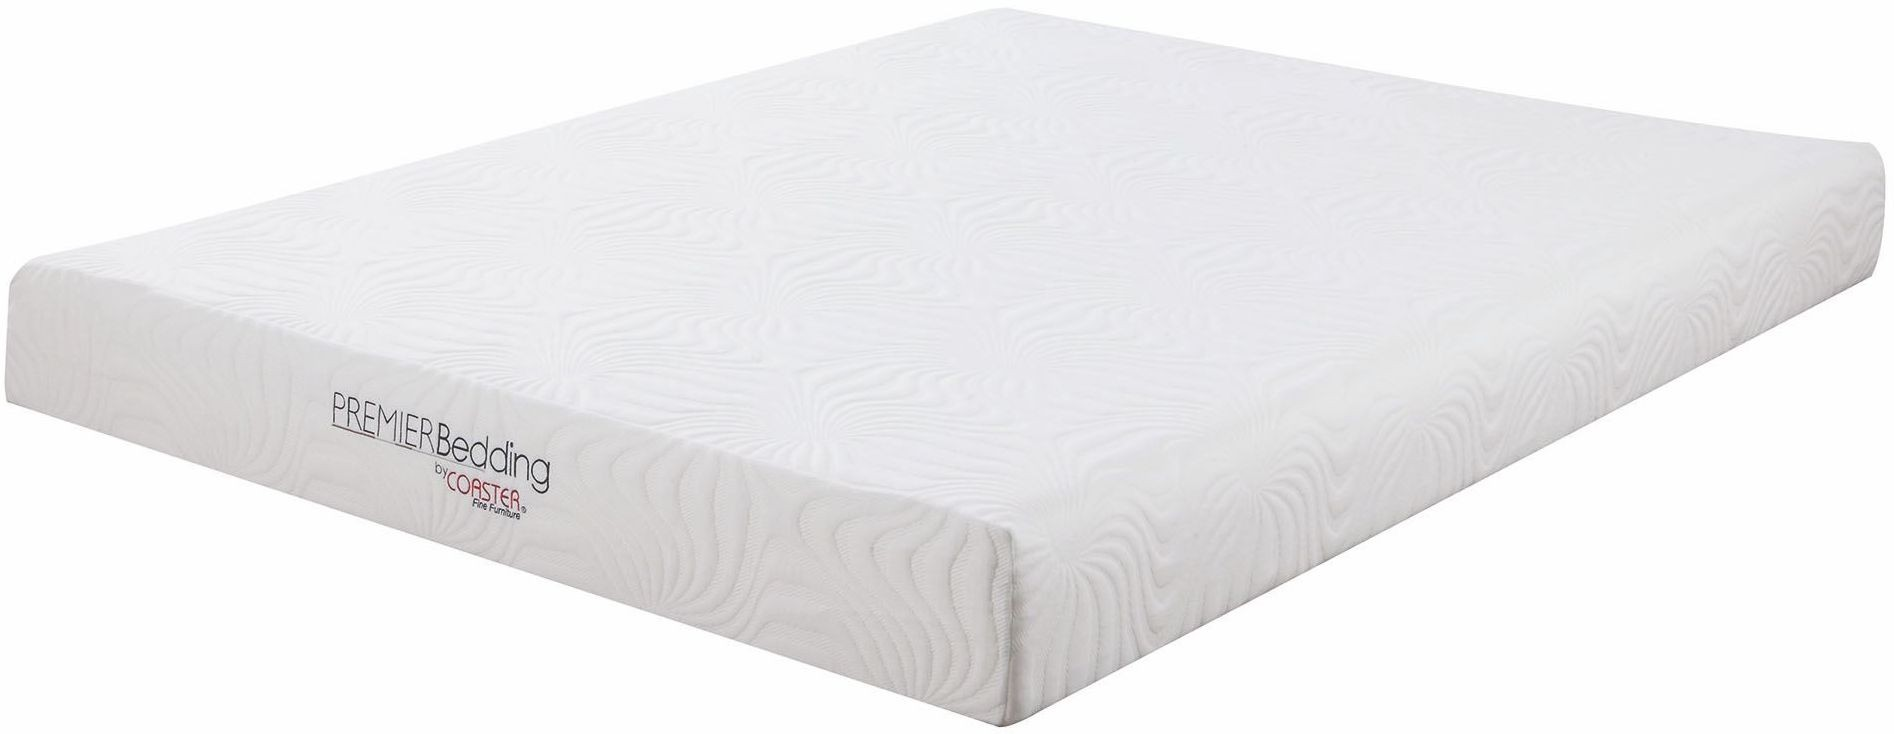 Keegan 8 Full Memory Foam Mattress 350063f Coaster Furniture